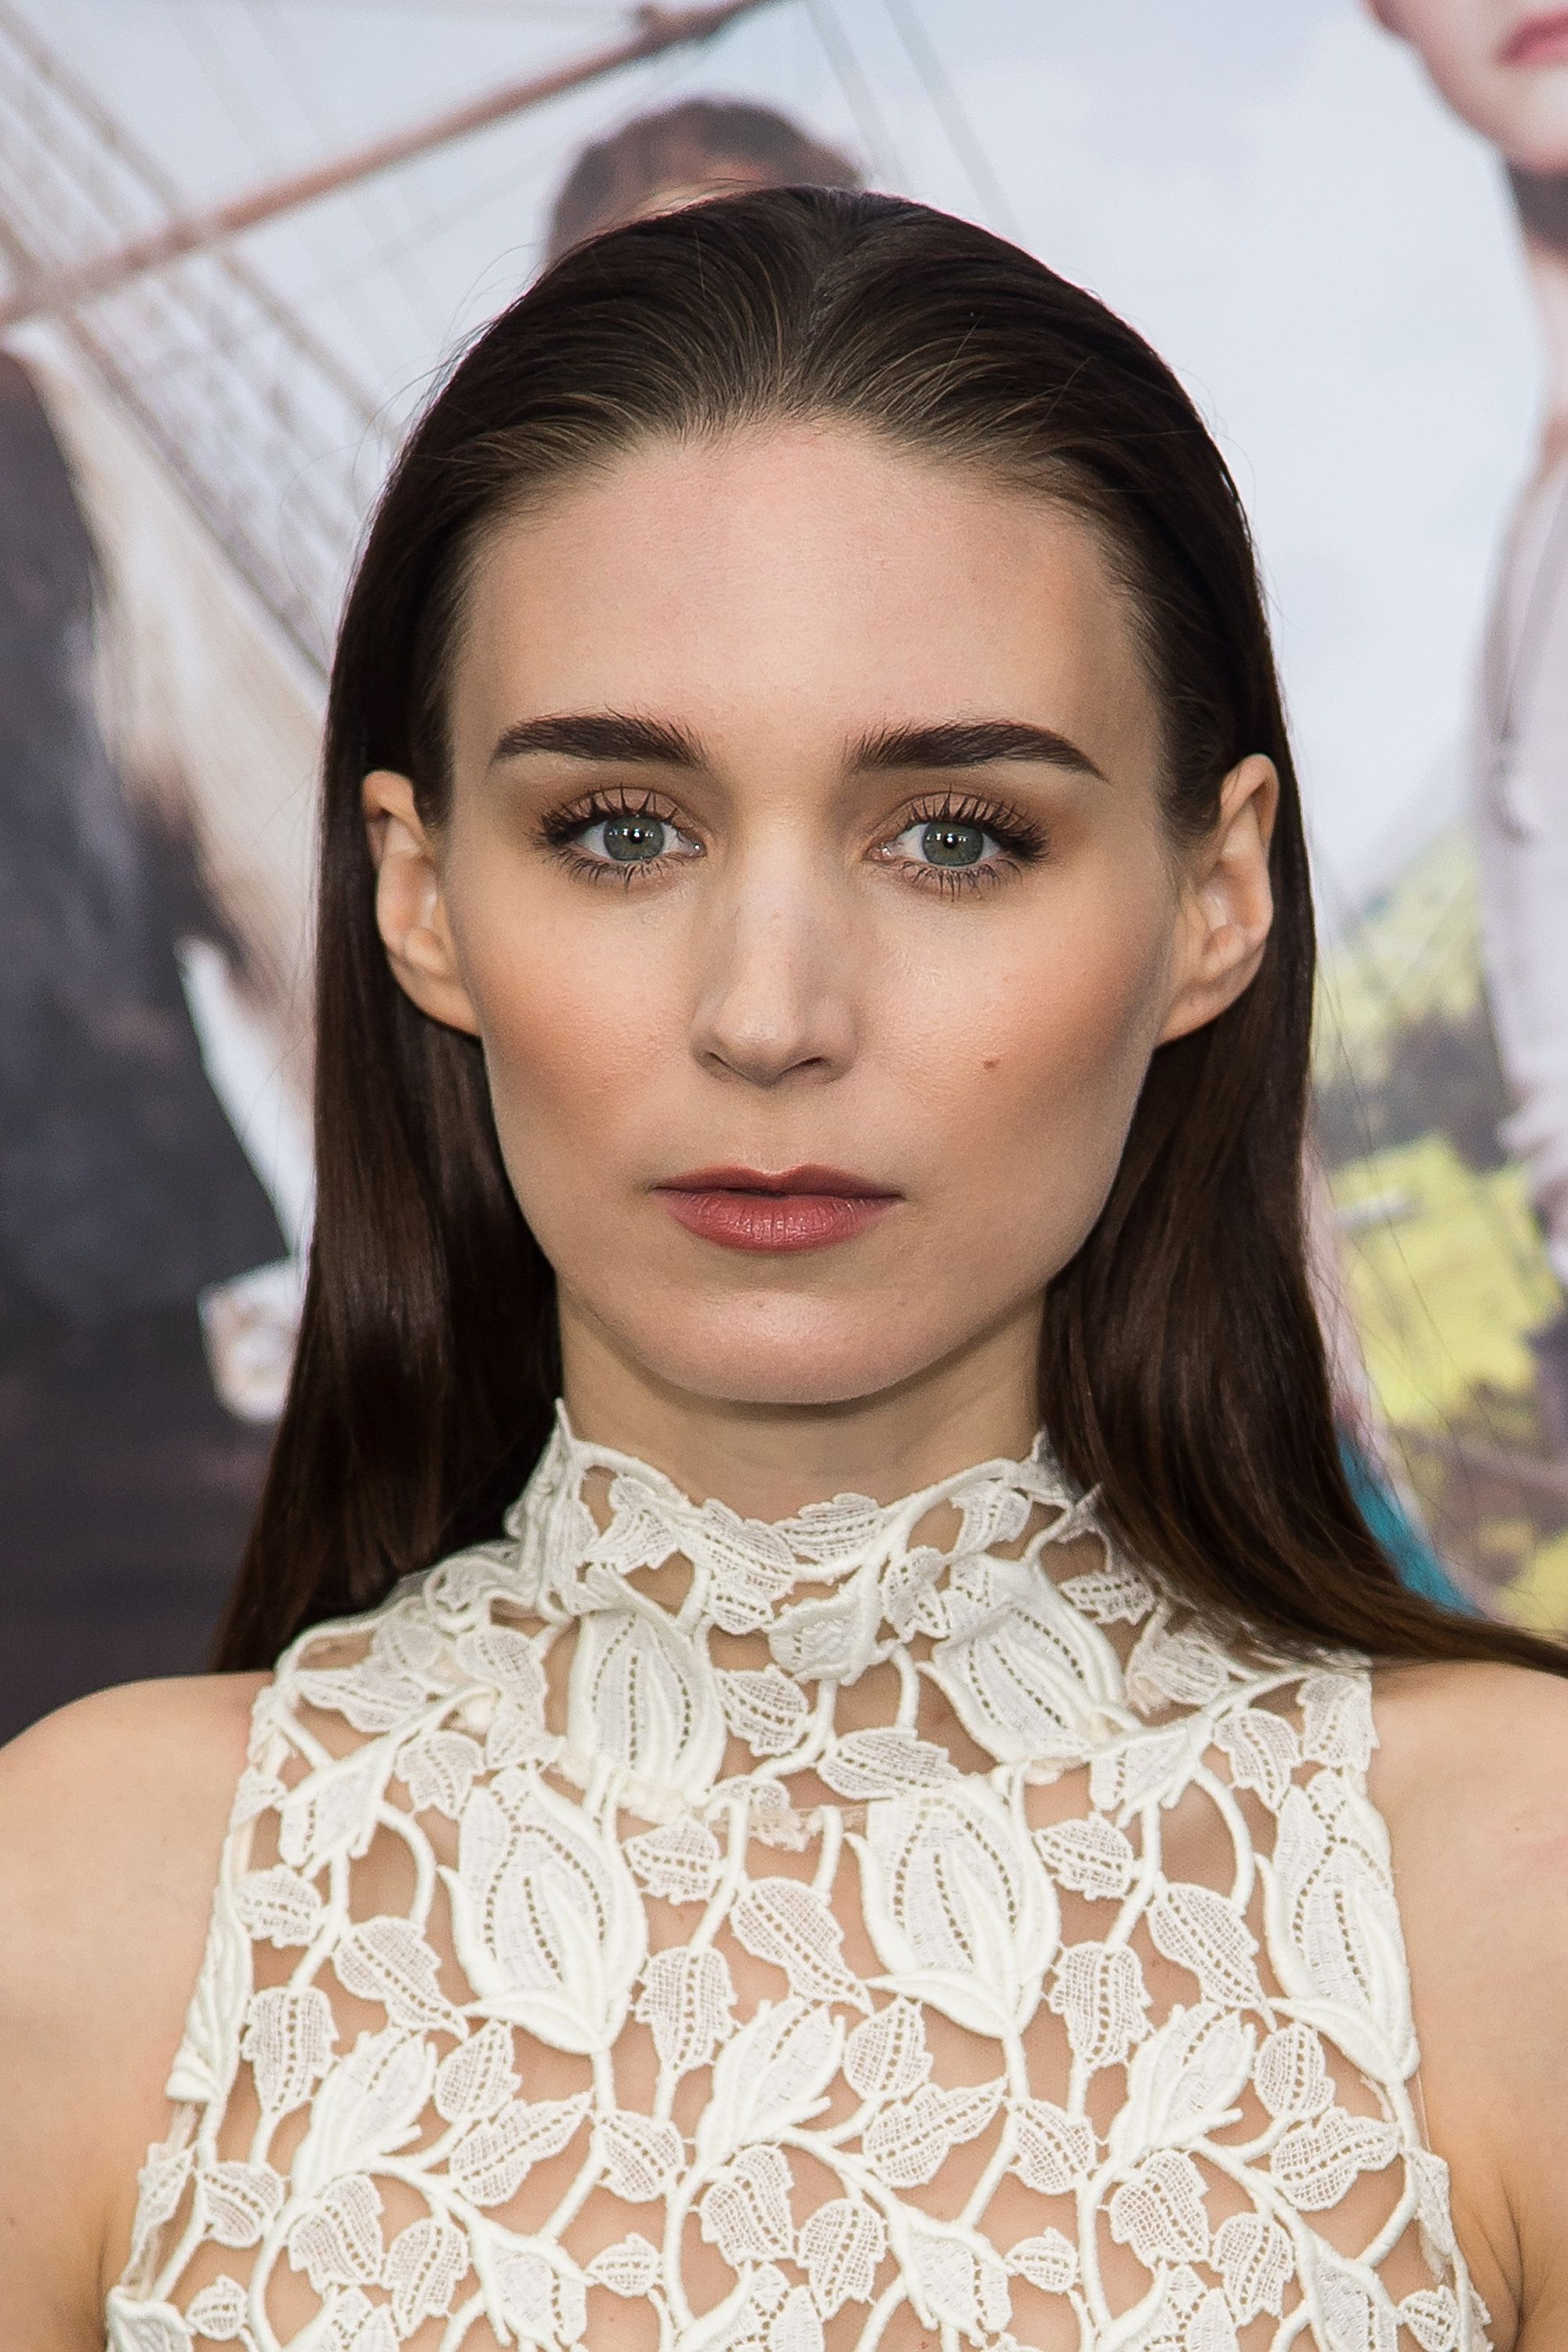 NEW YORK, NY - OCTOBER 04:  Actress Rooney Mara attends the 'Pan' New York Premiere at Ziegfeld Theater on October 4, 2015 in New York City.  (Photo by Michael Stewart/FilmMagic)